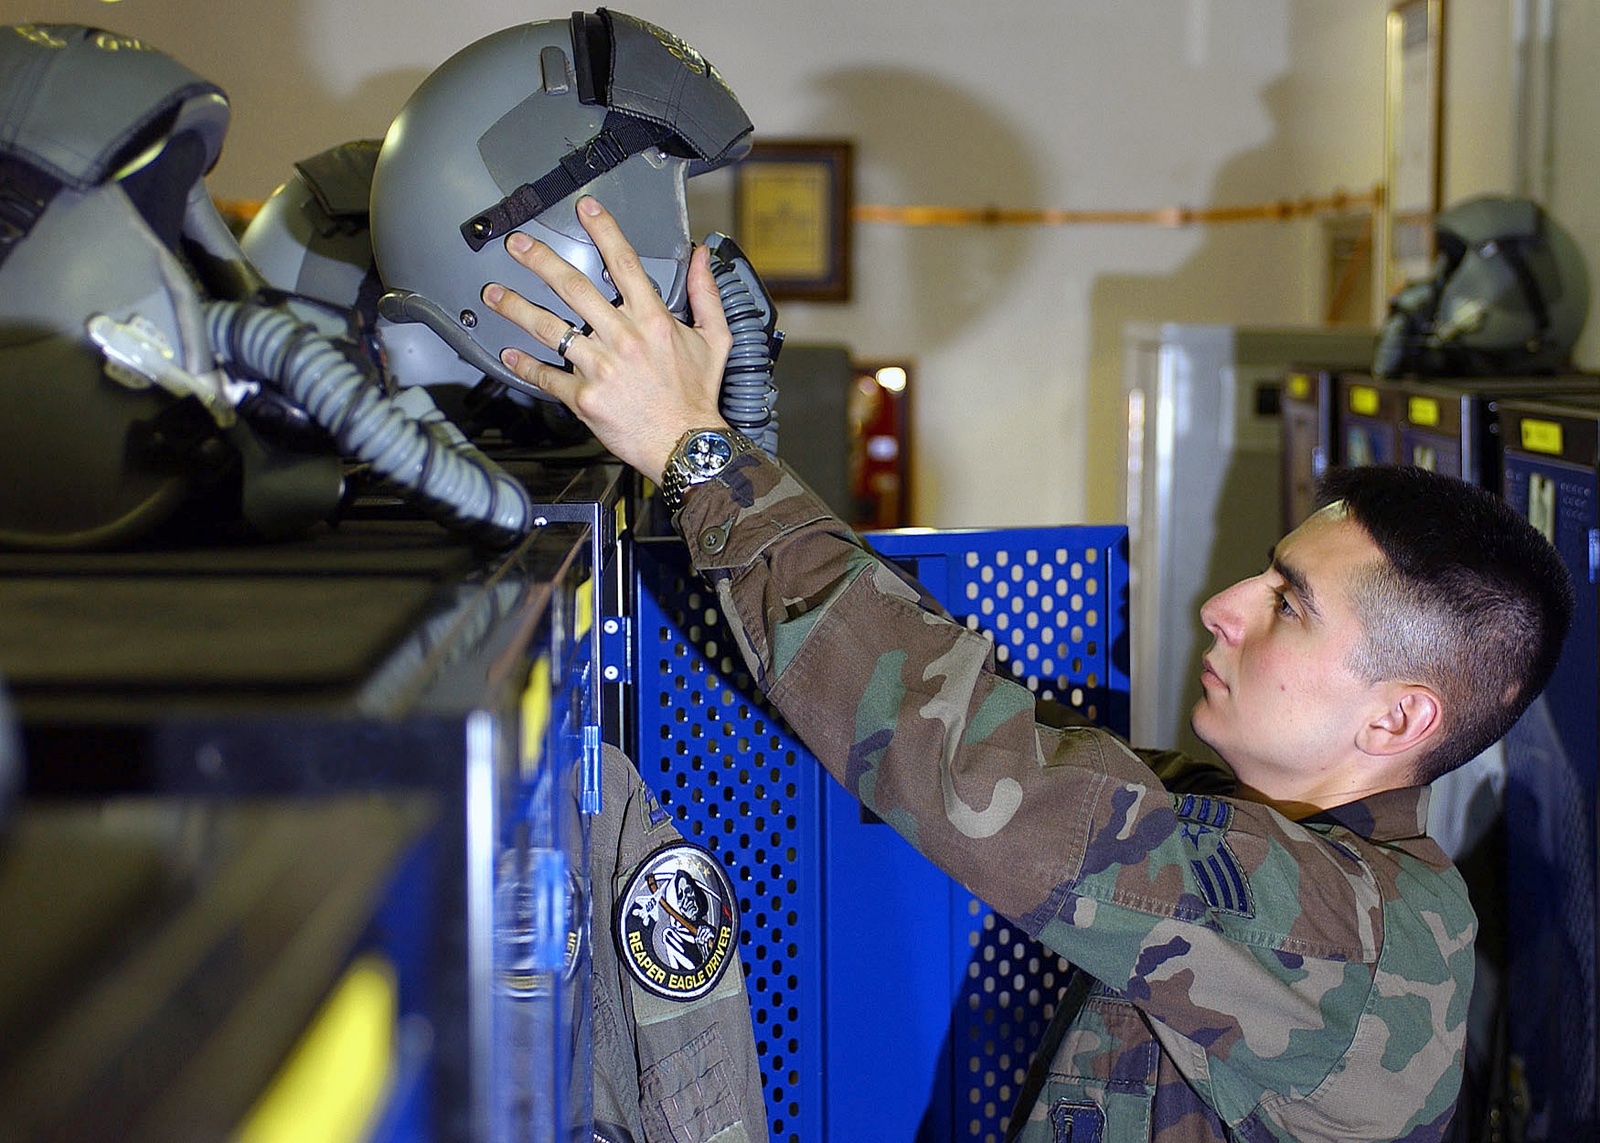 US Air Force (USAF) SENIOR AIRMAN (SRA) Jorge Chavez, Life Support Floor Supervisor, 493rd Fighter Squadron (FS), 48th Fighter Wing (FW), does post flight inspections on life support equipment inside the life support section at Royal Air Force (RAF) Lakenheath, United Kingdom (UK)